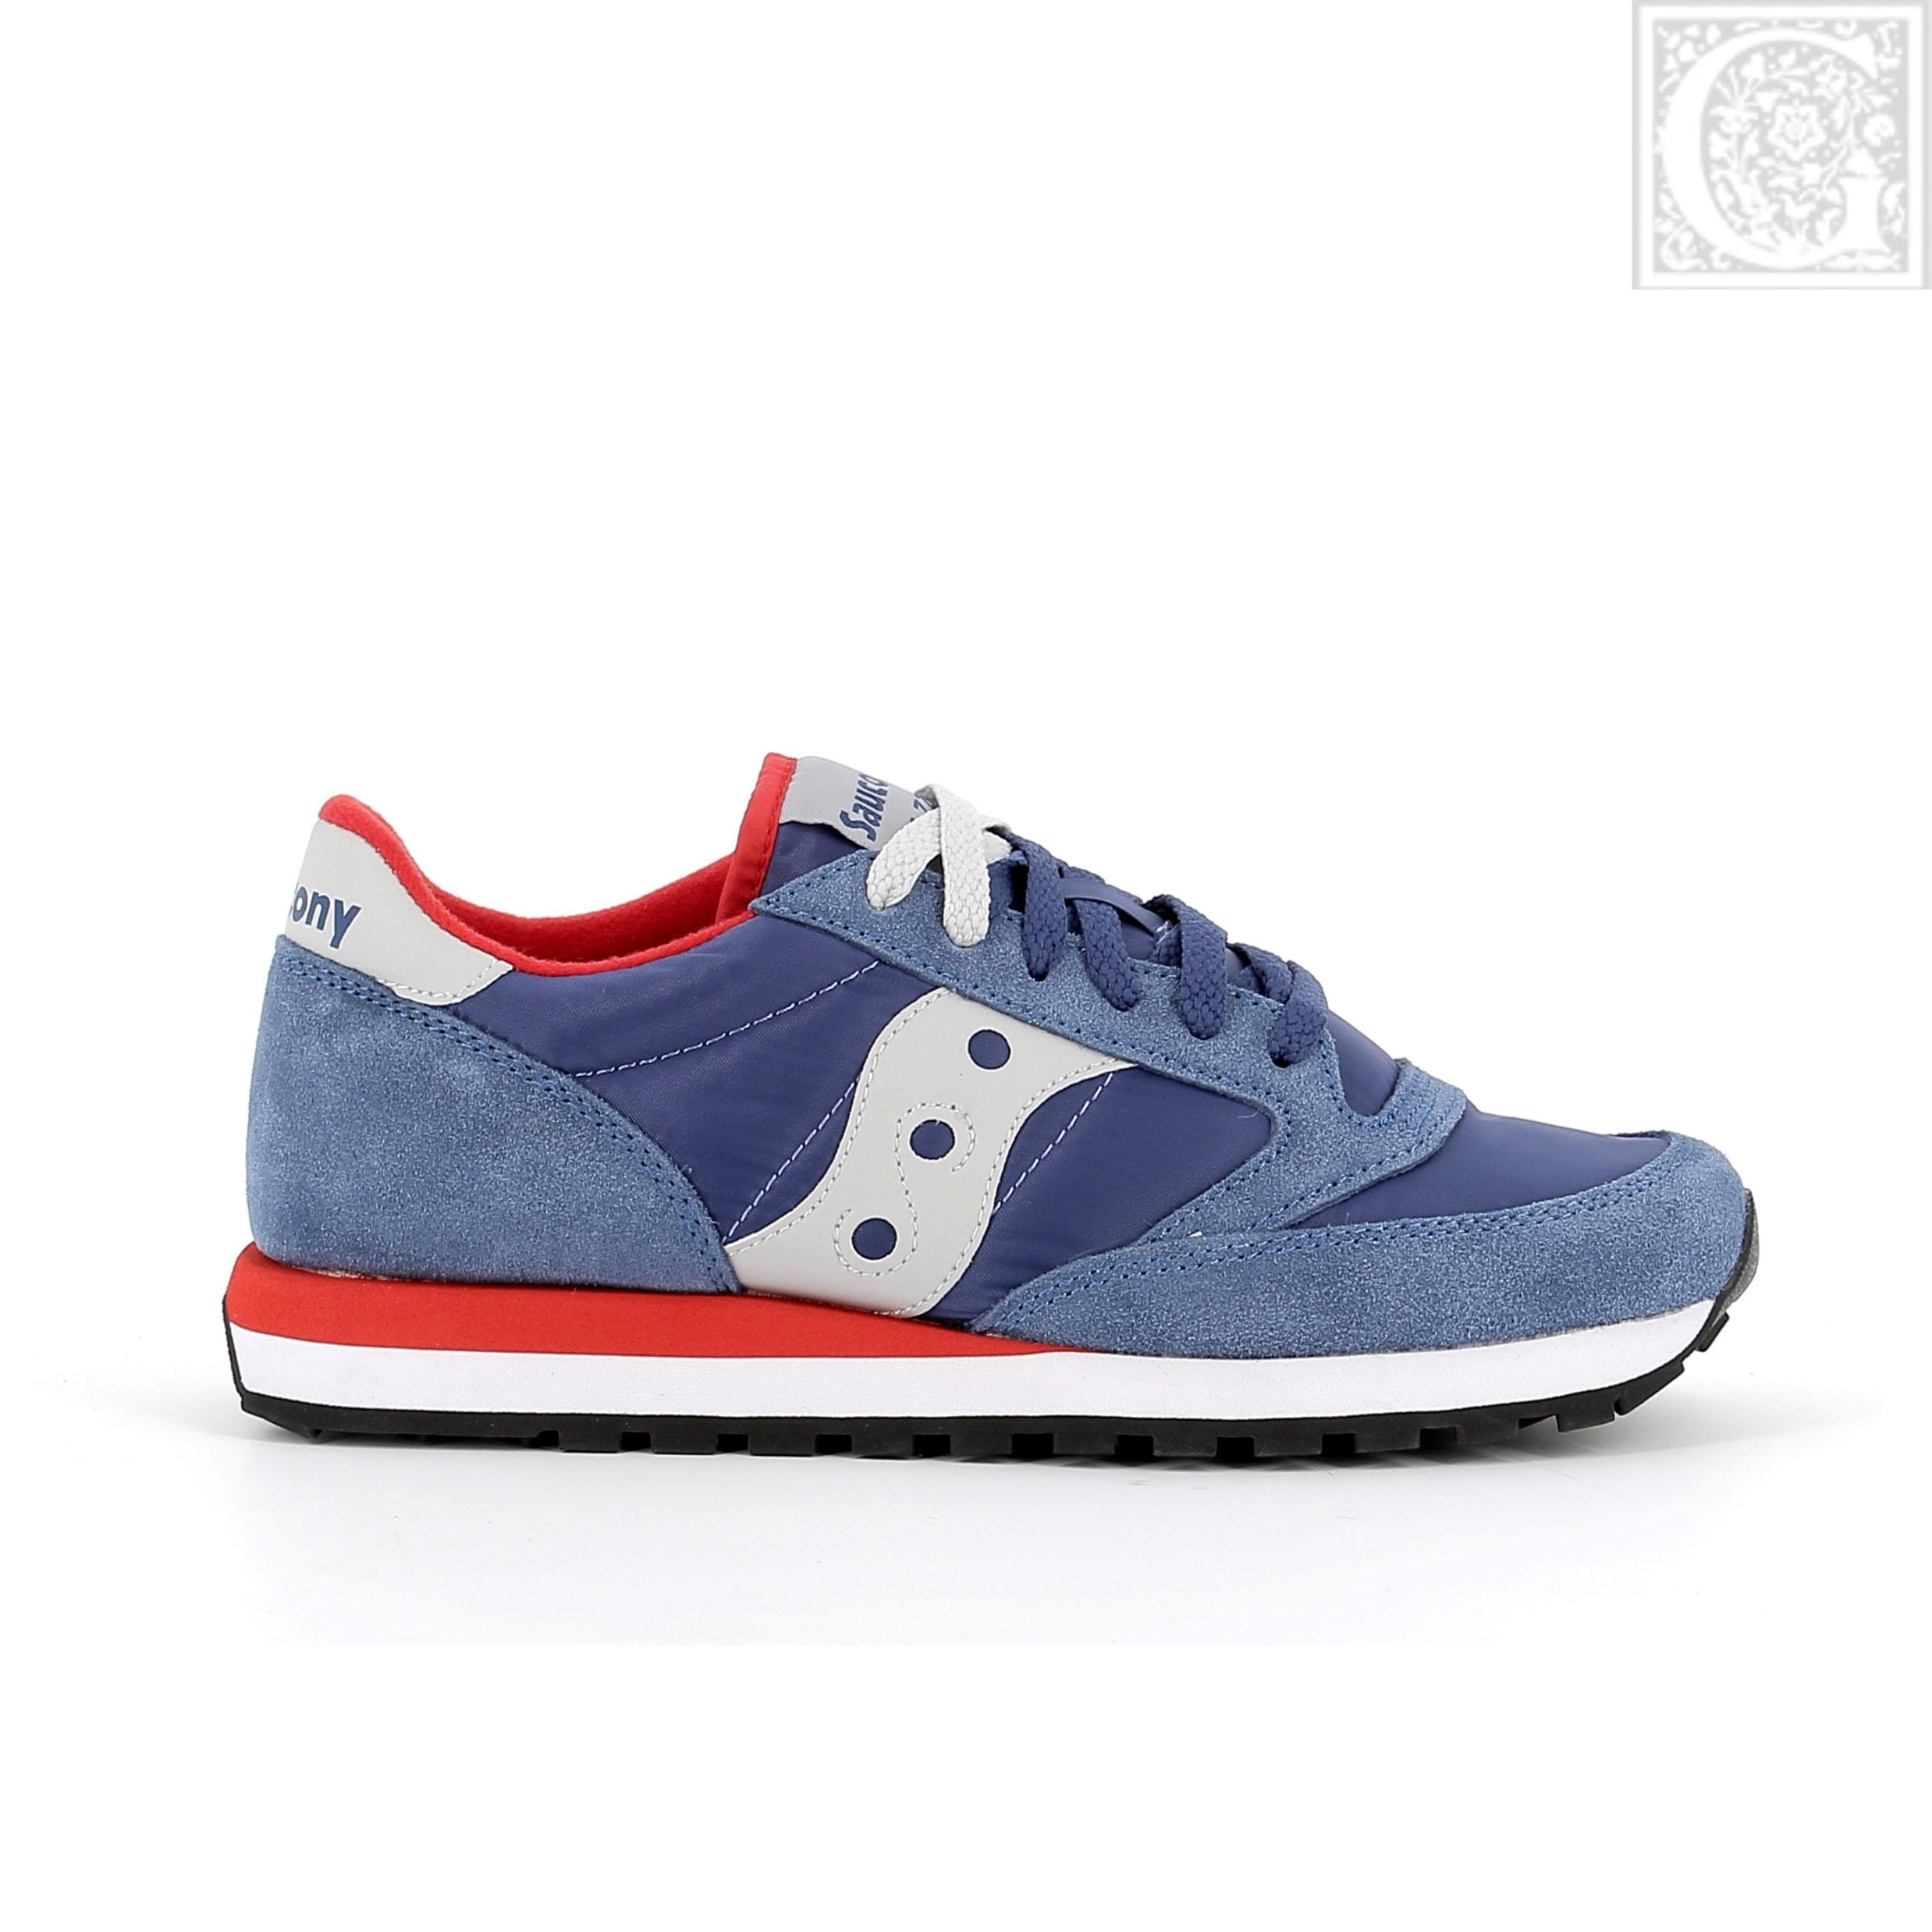 SAUCONY JAZZ ORIGINALS 2044-446 BLU-RED - GIGLIO BOUTIQUE bba2e8f6b0d